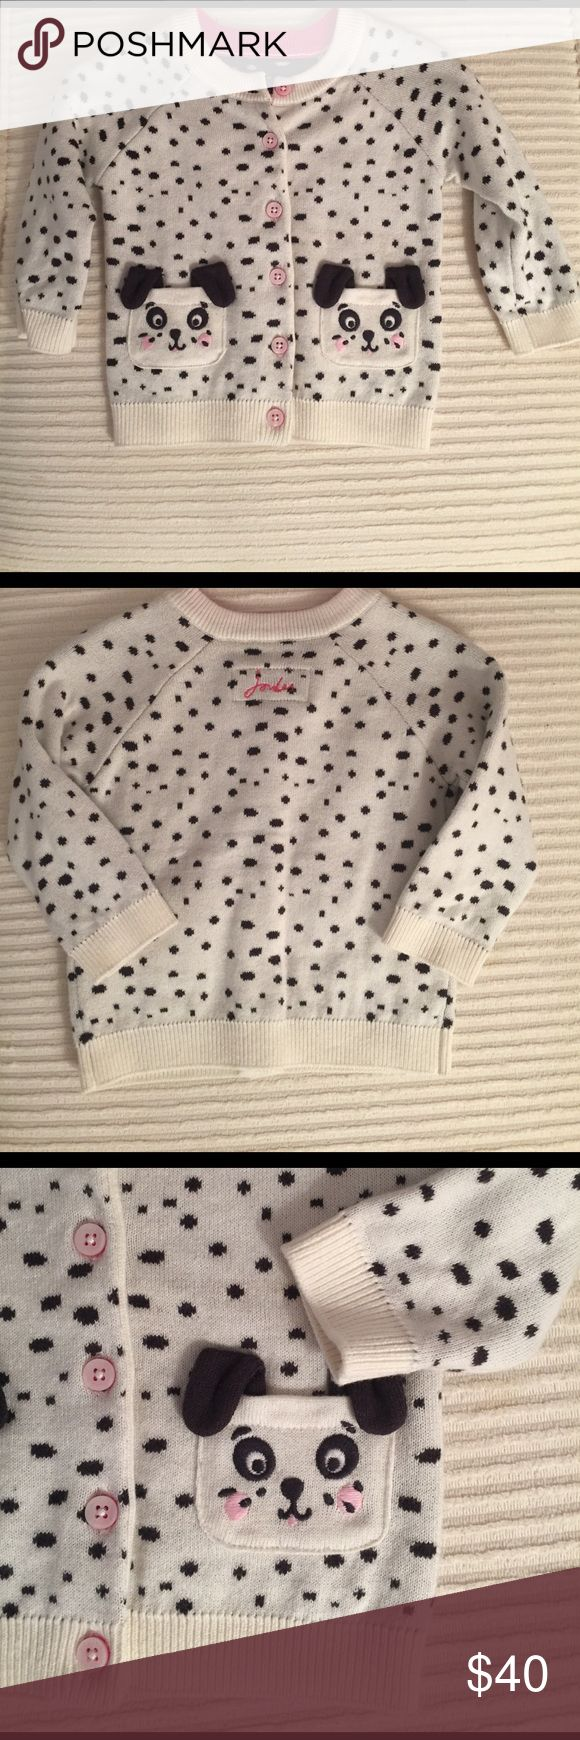 Joules NWOT puppy cardigan sweater Adorable NWOT cardigan sweater.  Cream with black polka dots, puppy detail on pockets and pink buttons.  So cute!!! Joules Shirts & Tops Sweaters